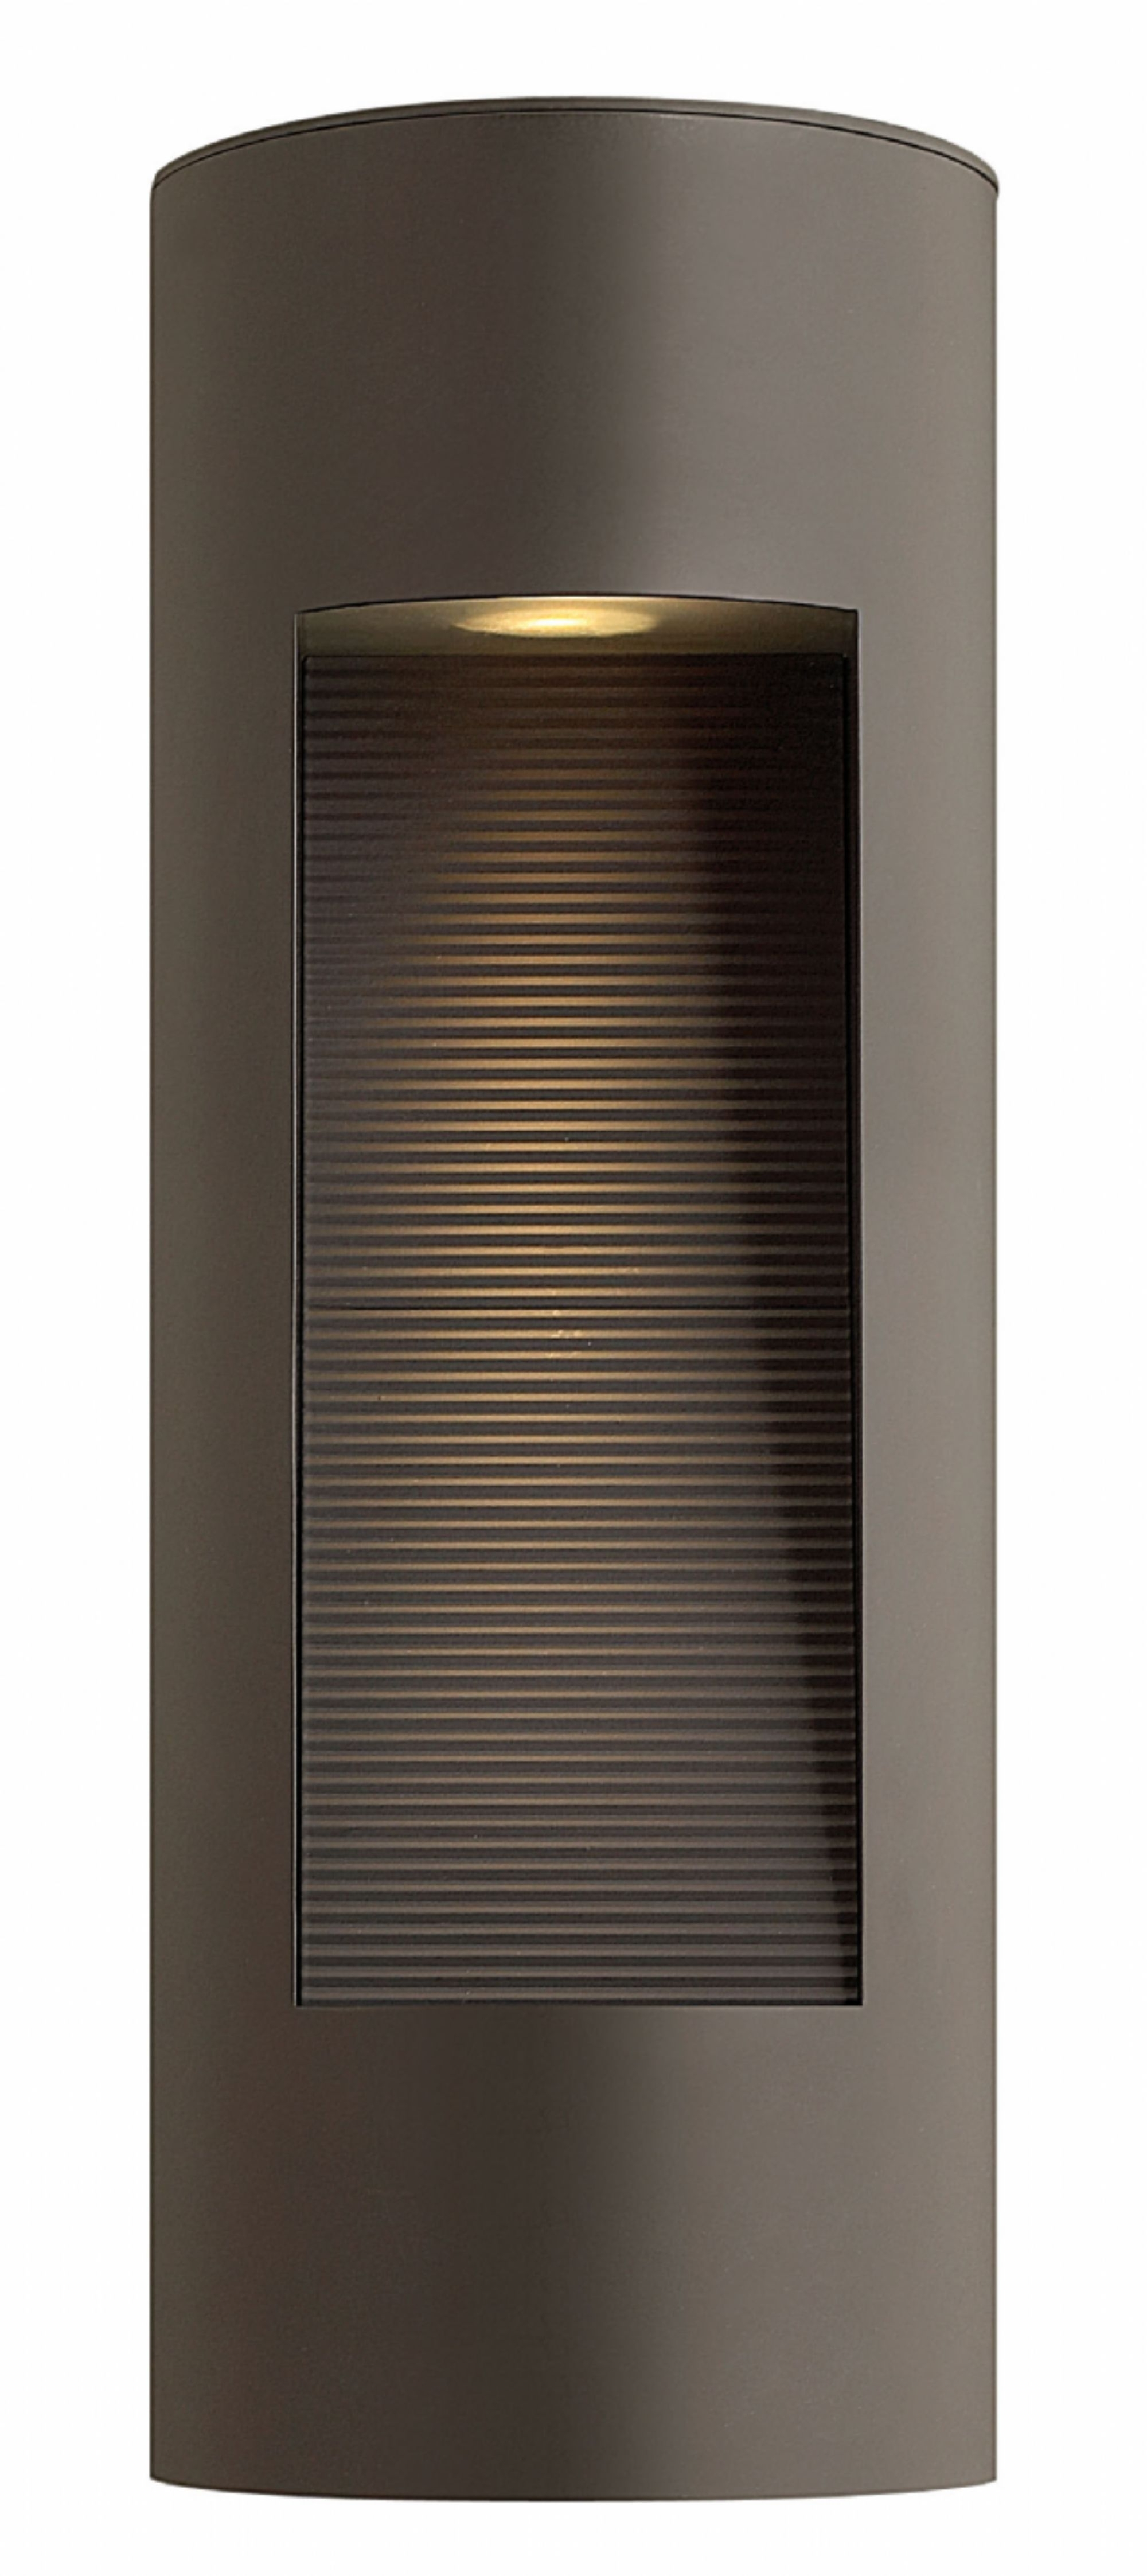 Famous Modern Led Hinkley Lighting For Bronze Luna > Exterior Wall Mount (View 2 of 20)